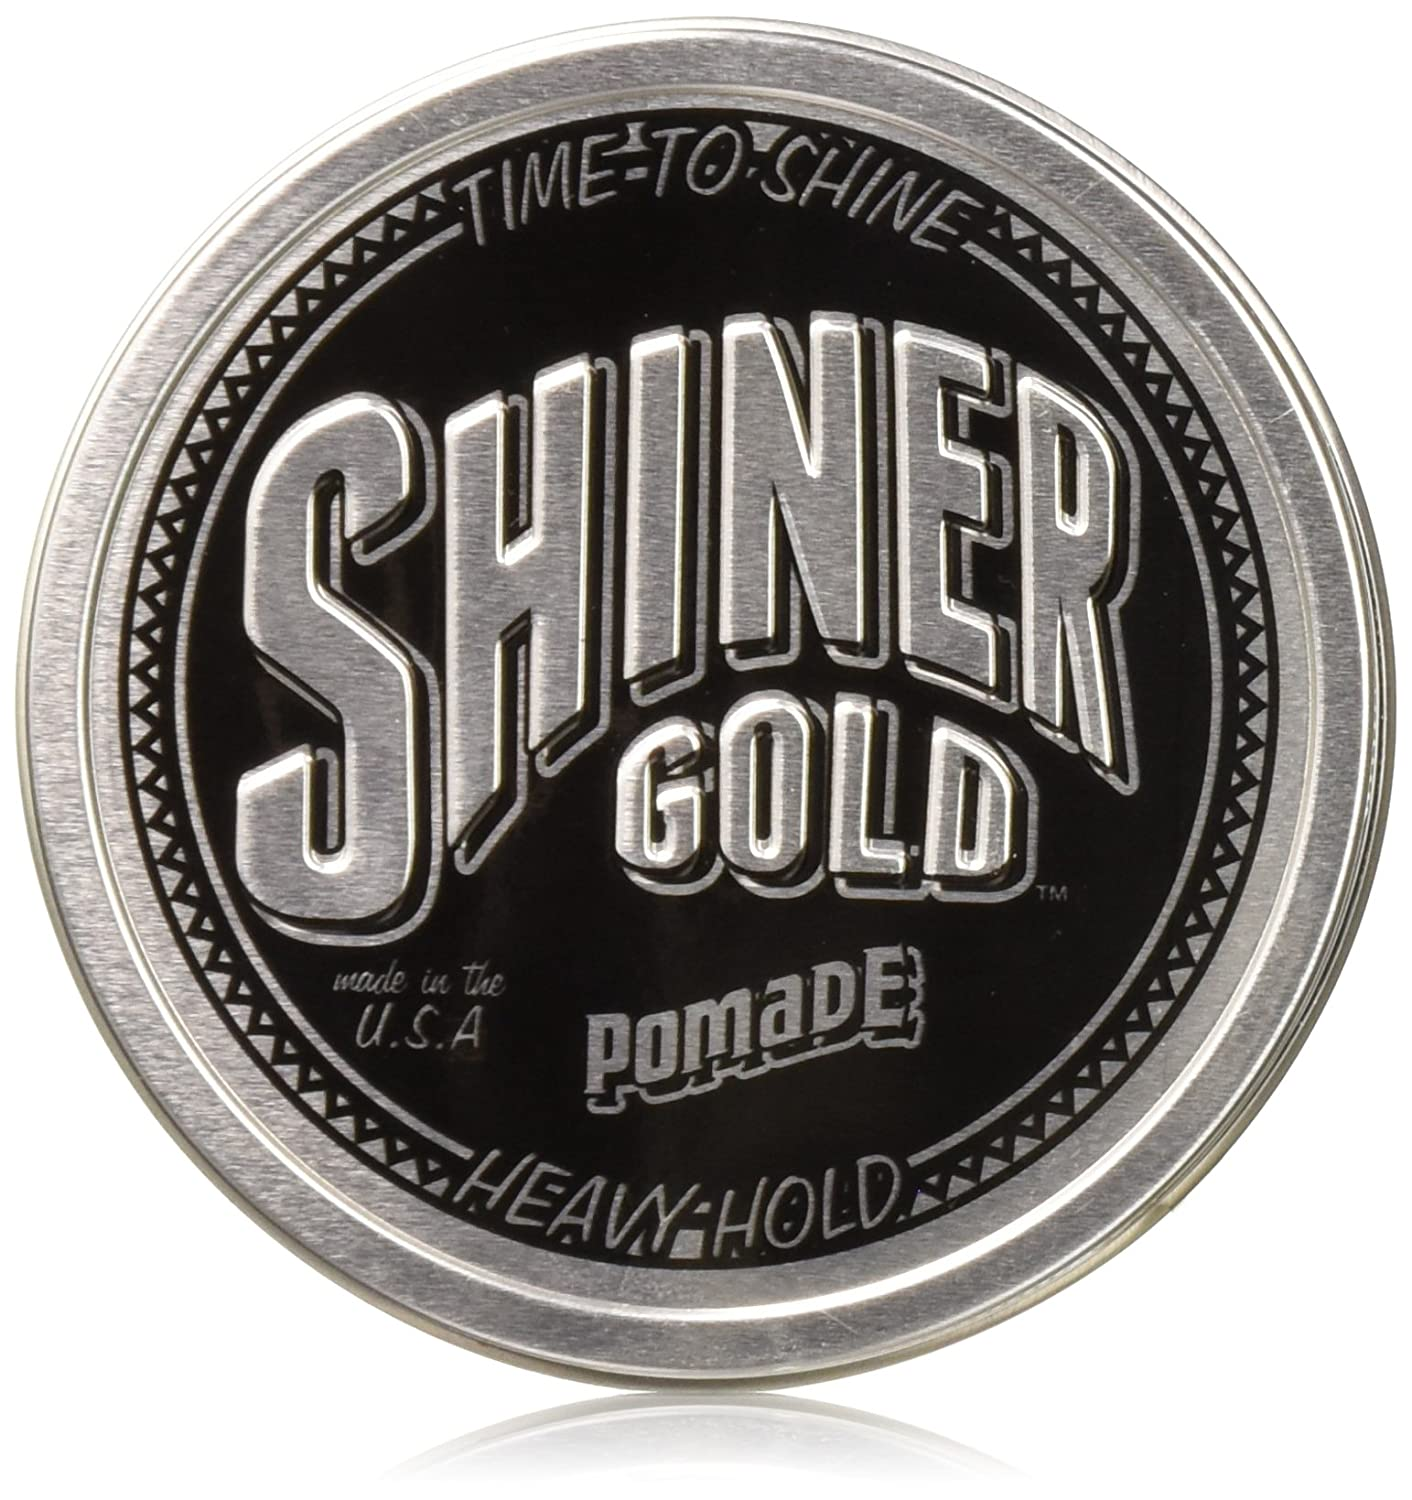 Shiner Gold Pomade 4 oz 3 Pack & Free Comb